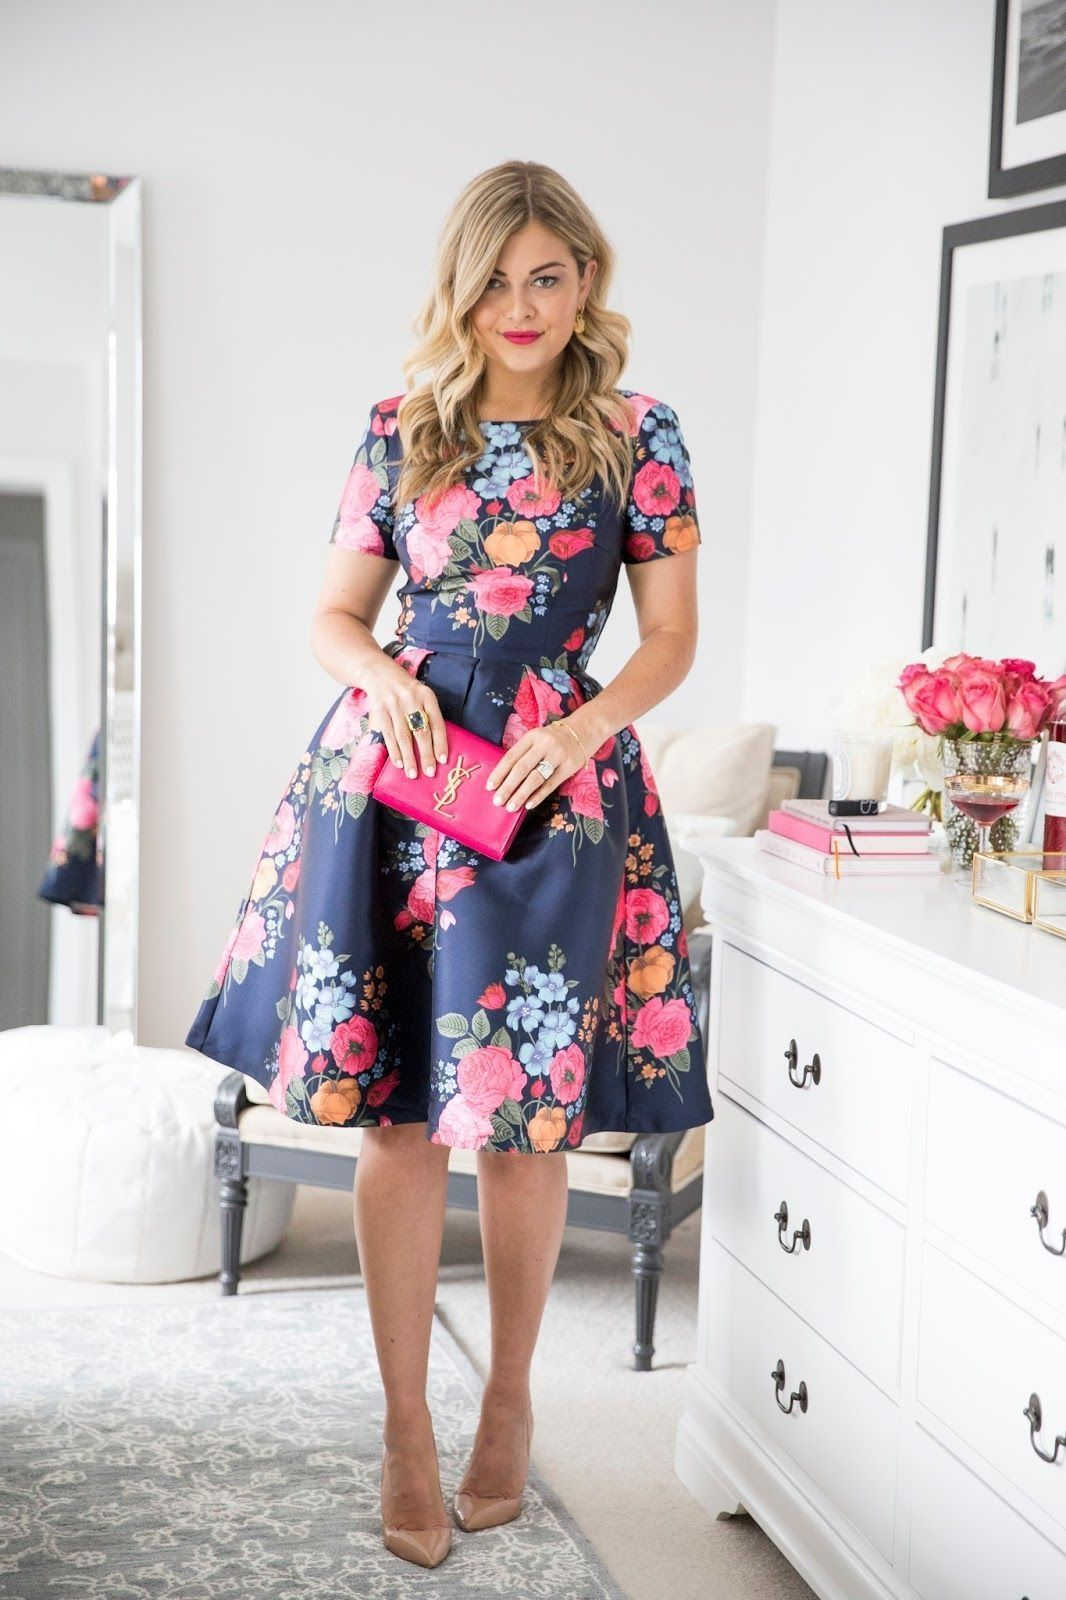 43 Adorable and Elegant Fashion for Fall with Flower Dress Style ... a6e5ddefd40c